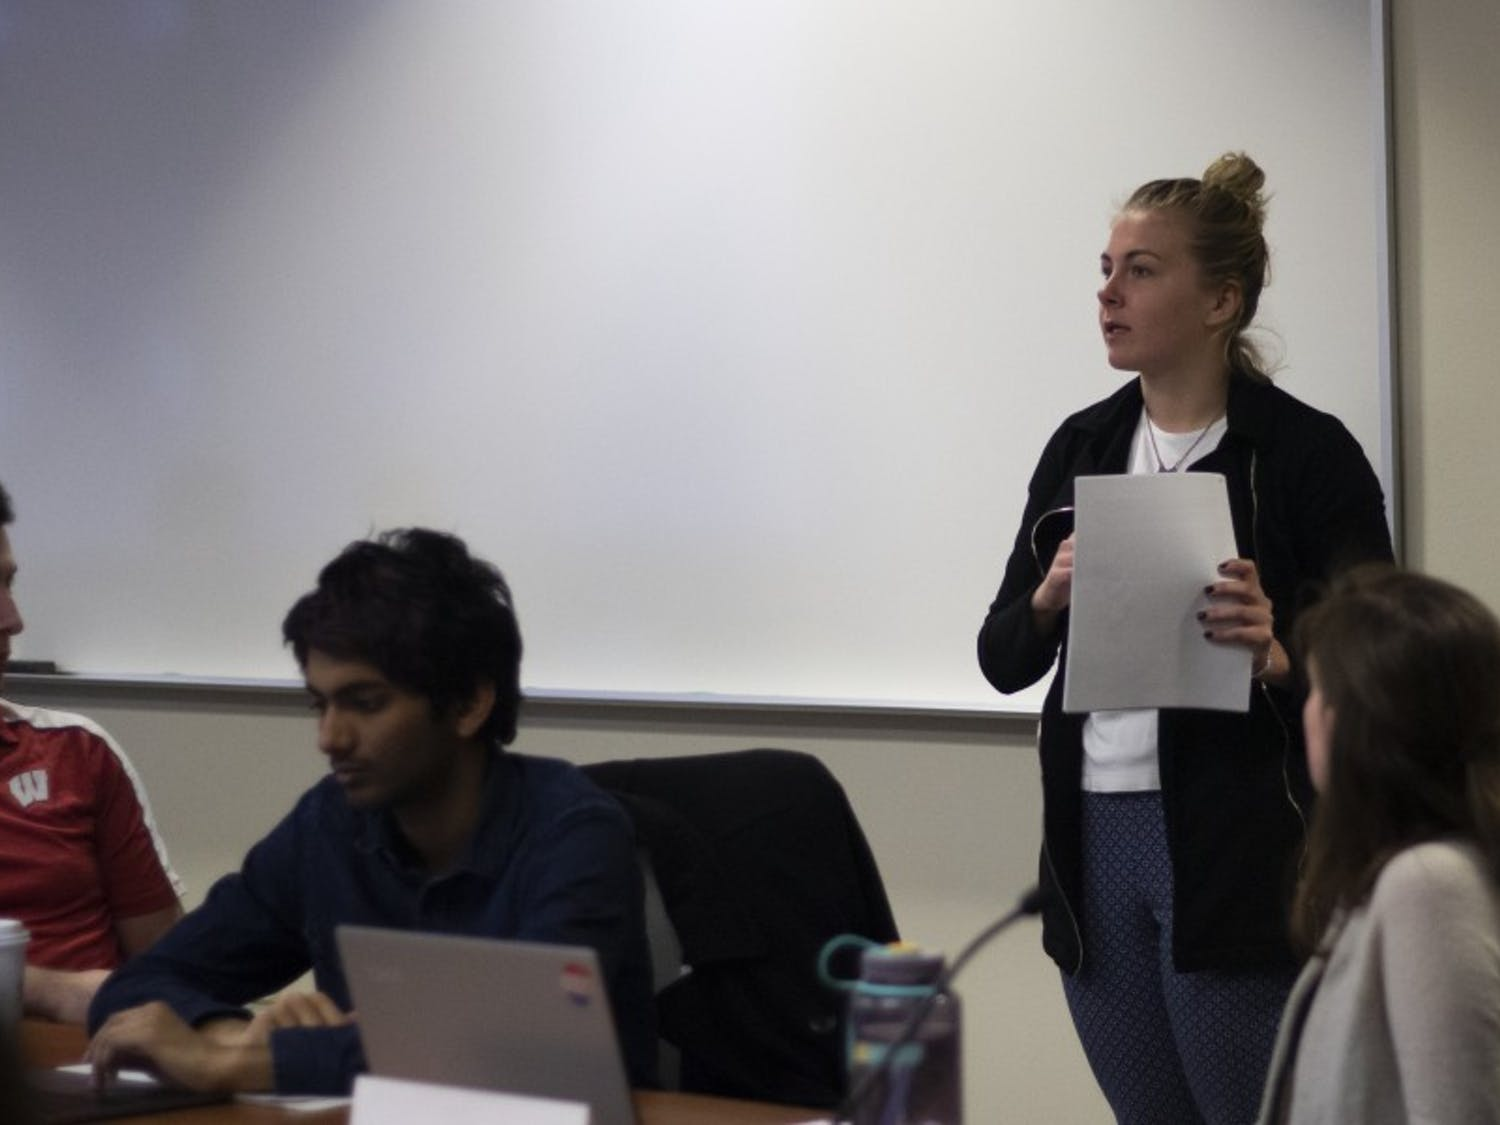 The Associated Students of Madison announced their support of UW-River Falls student body president Rosemary Pechous after she composed legislation granting students the ability to take time off from campus without needing to drop out of college.